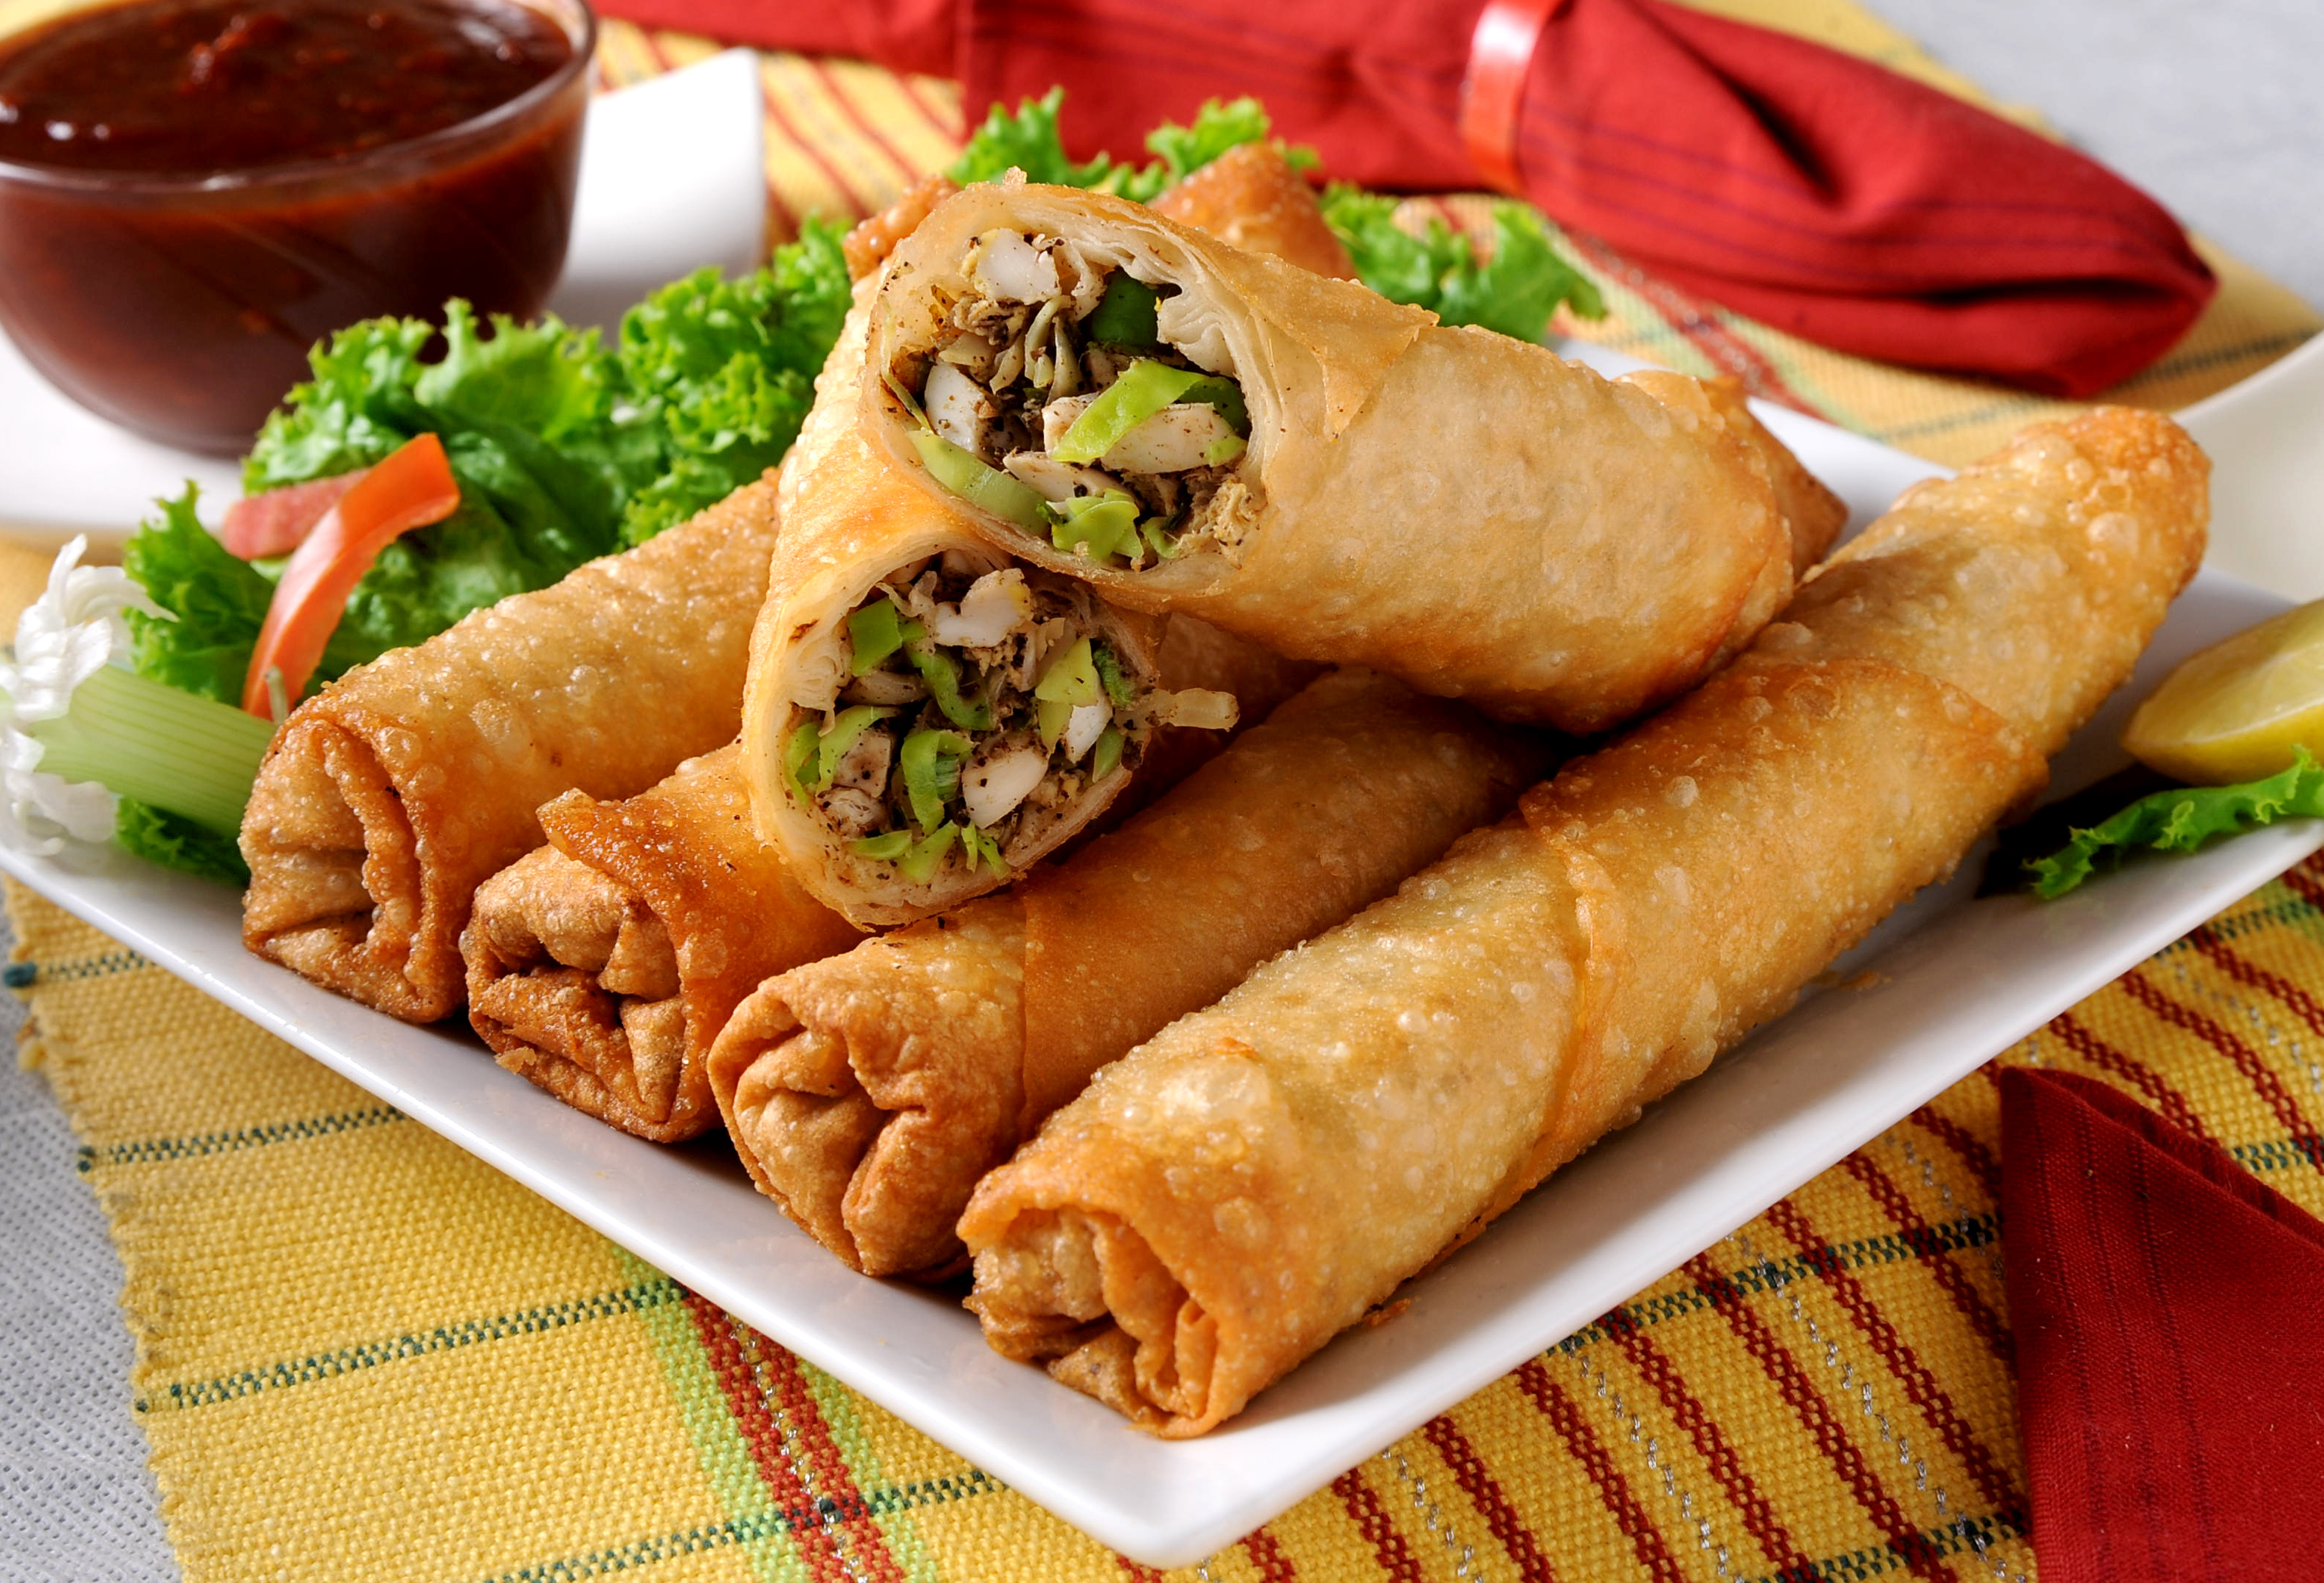 Spring Rolls - Taste Mushroom & Spinach like never before!